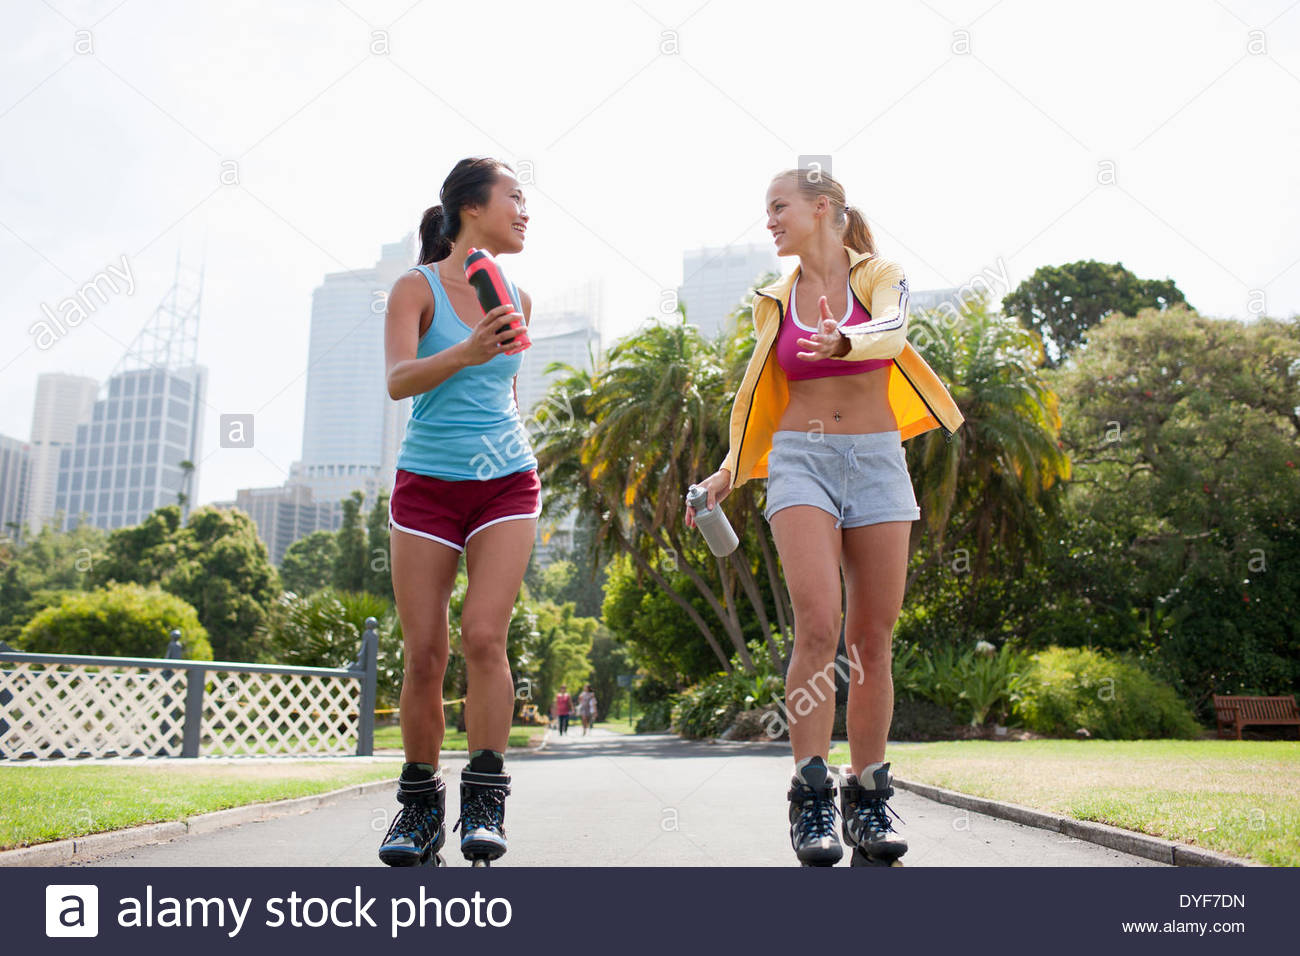 Friends inline skating in park - Stock Image